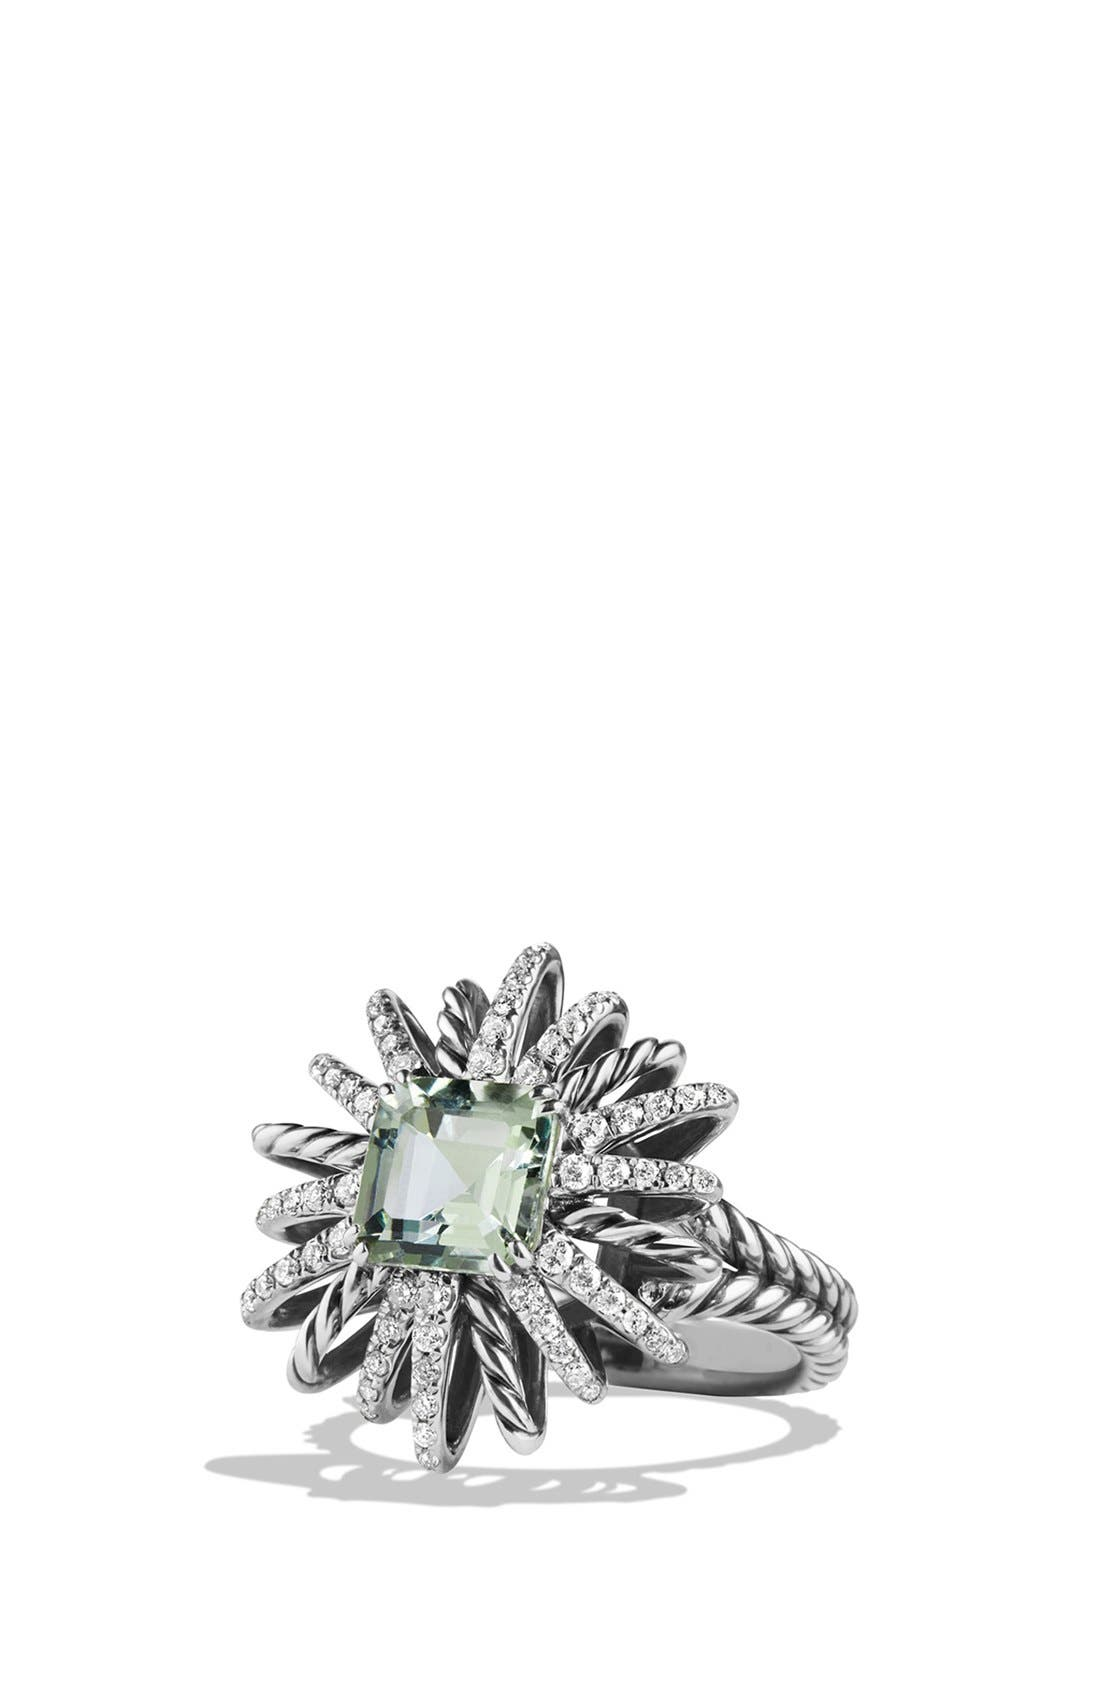 David Yurman 'Starburst' Ring